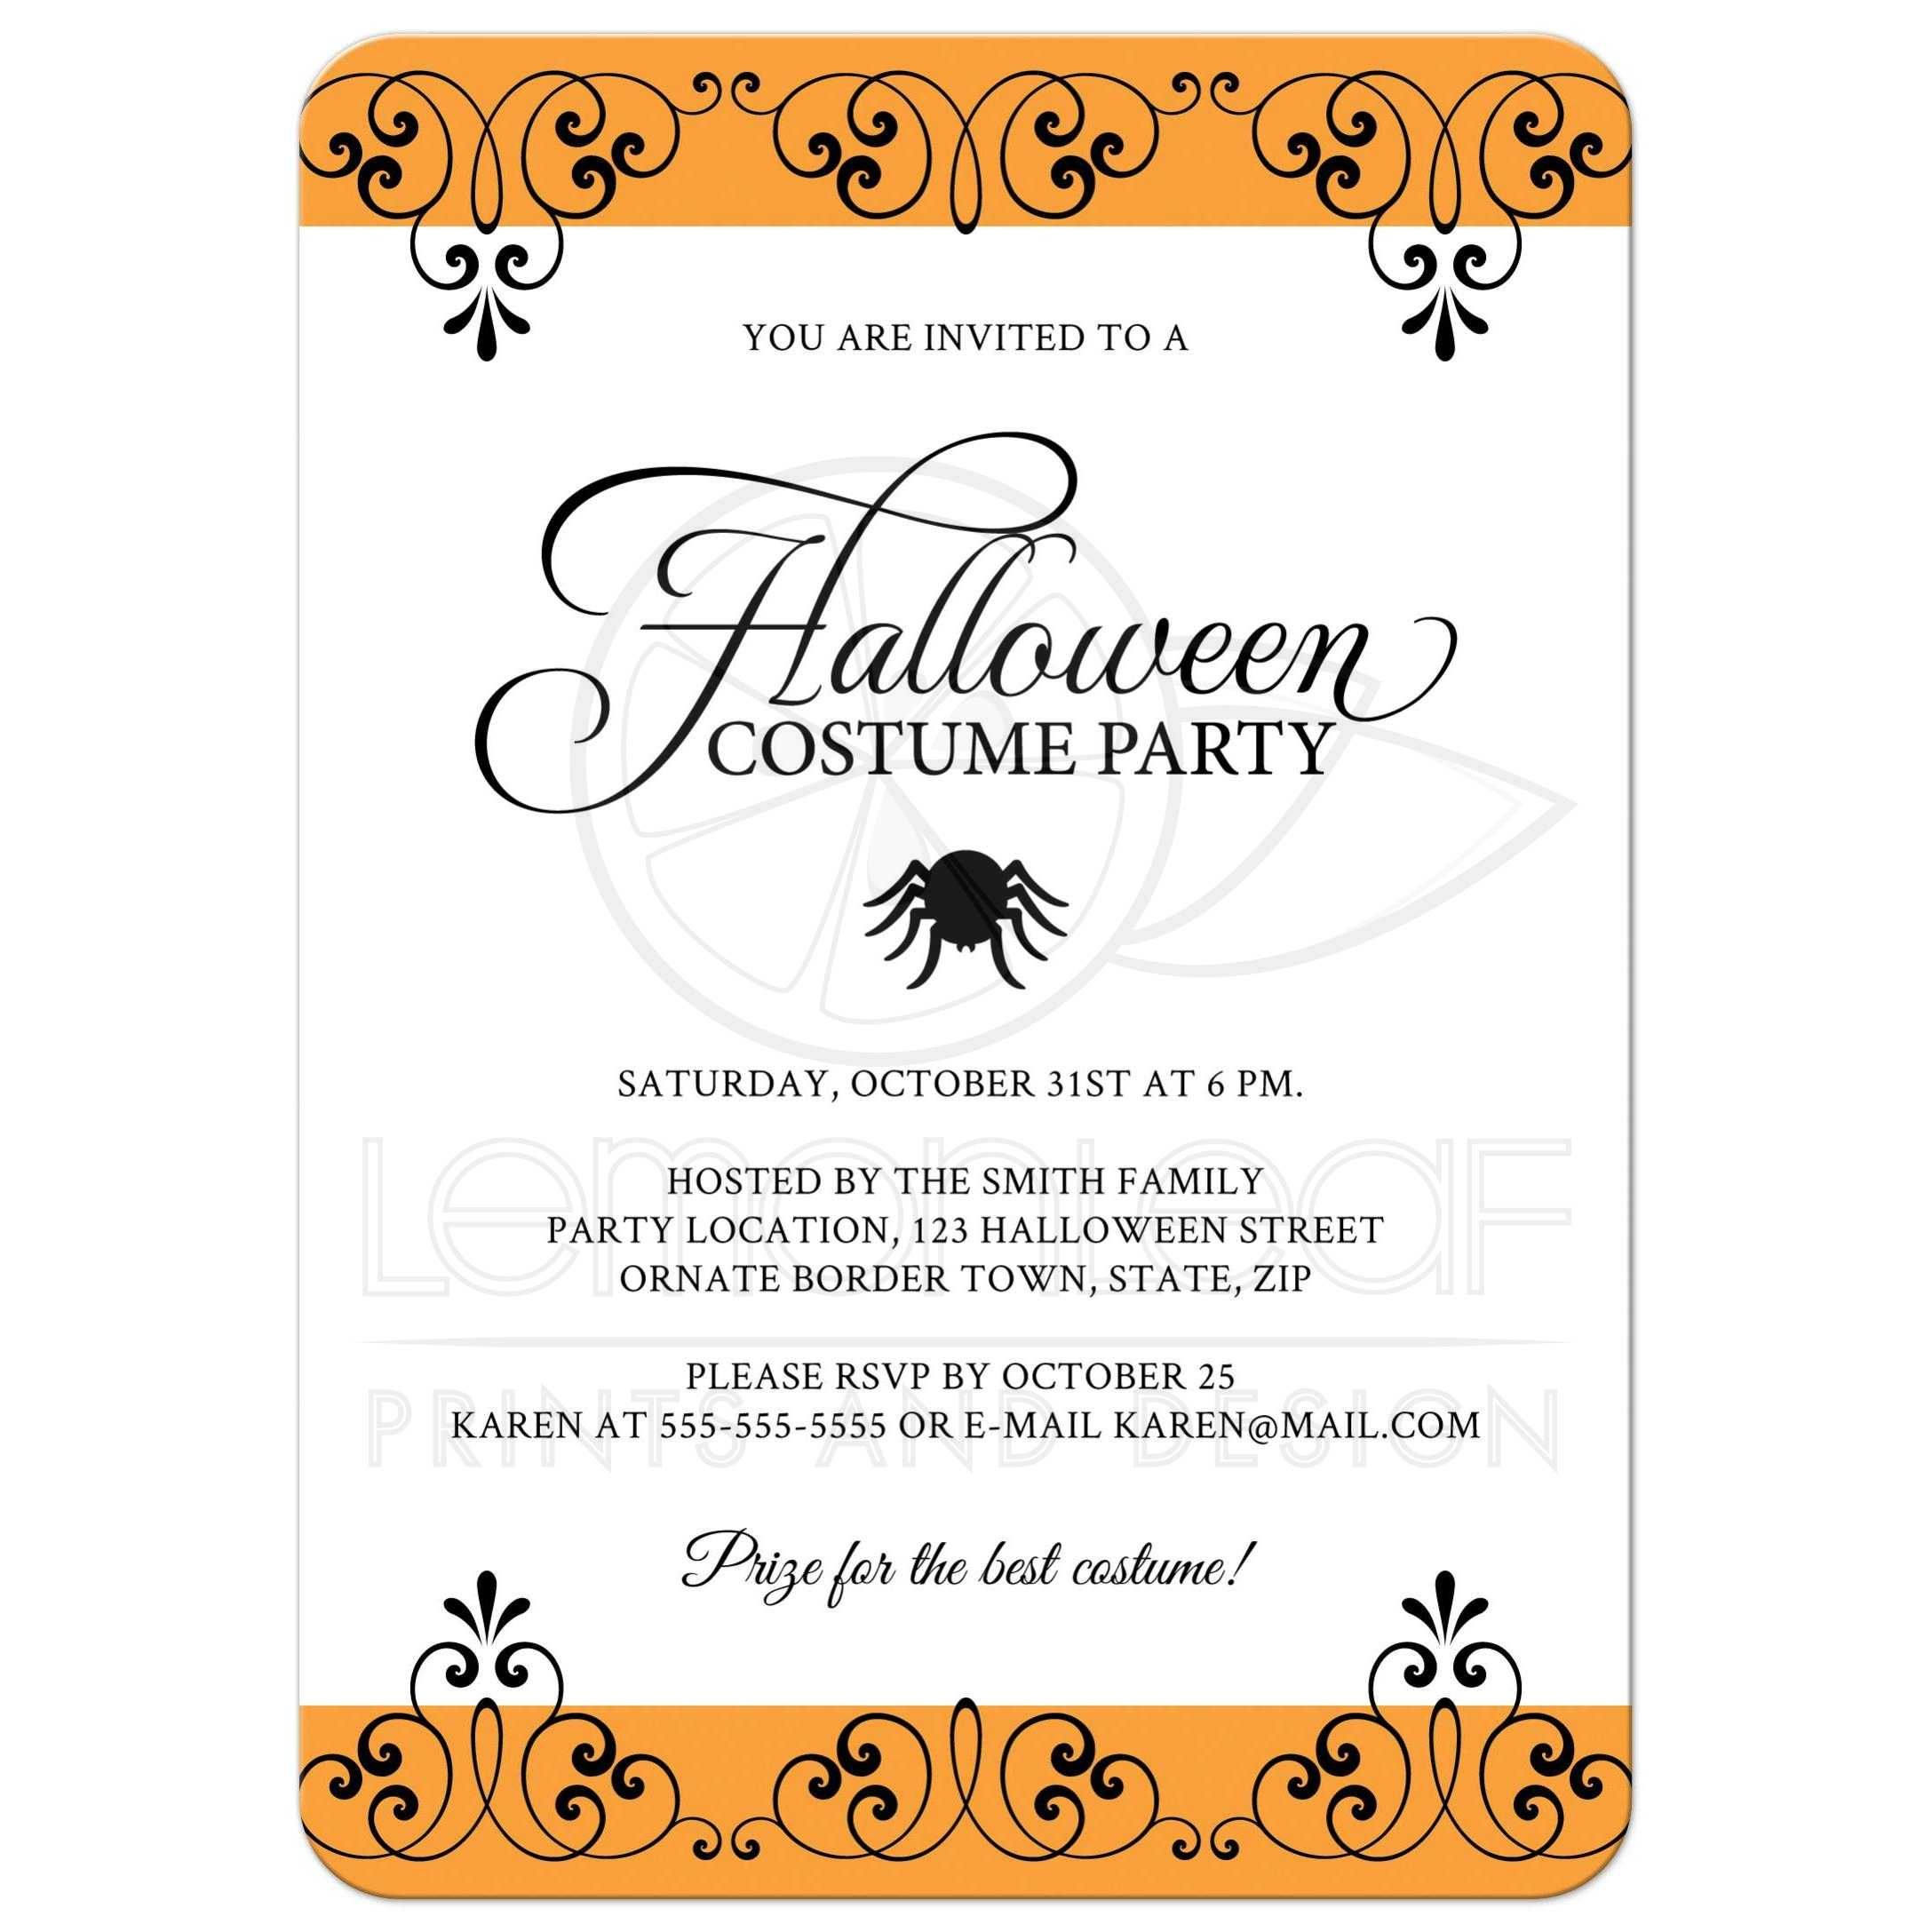 Halloween costume party invitation with ornate, black and